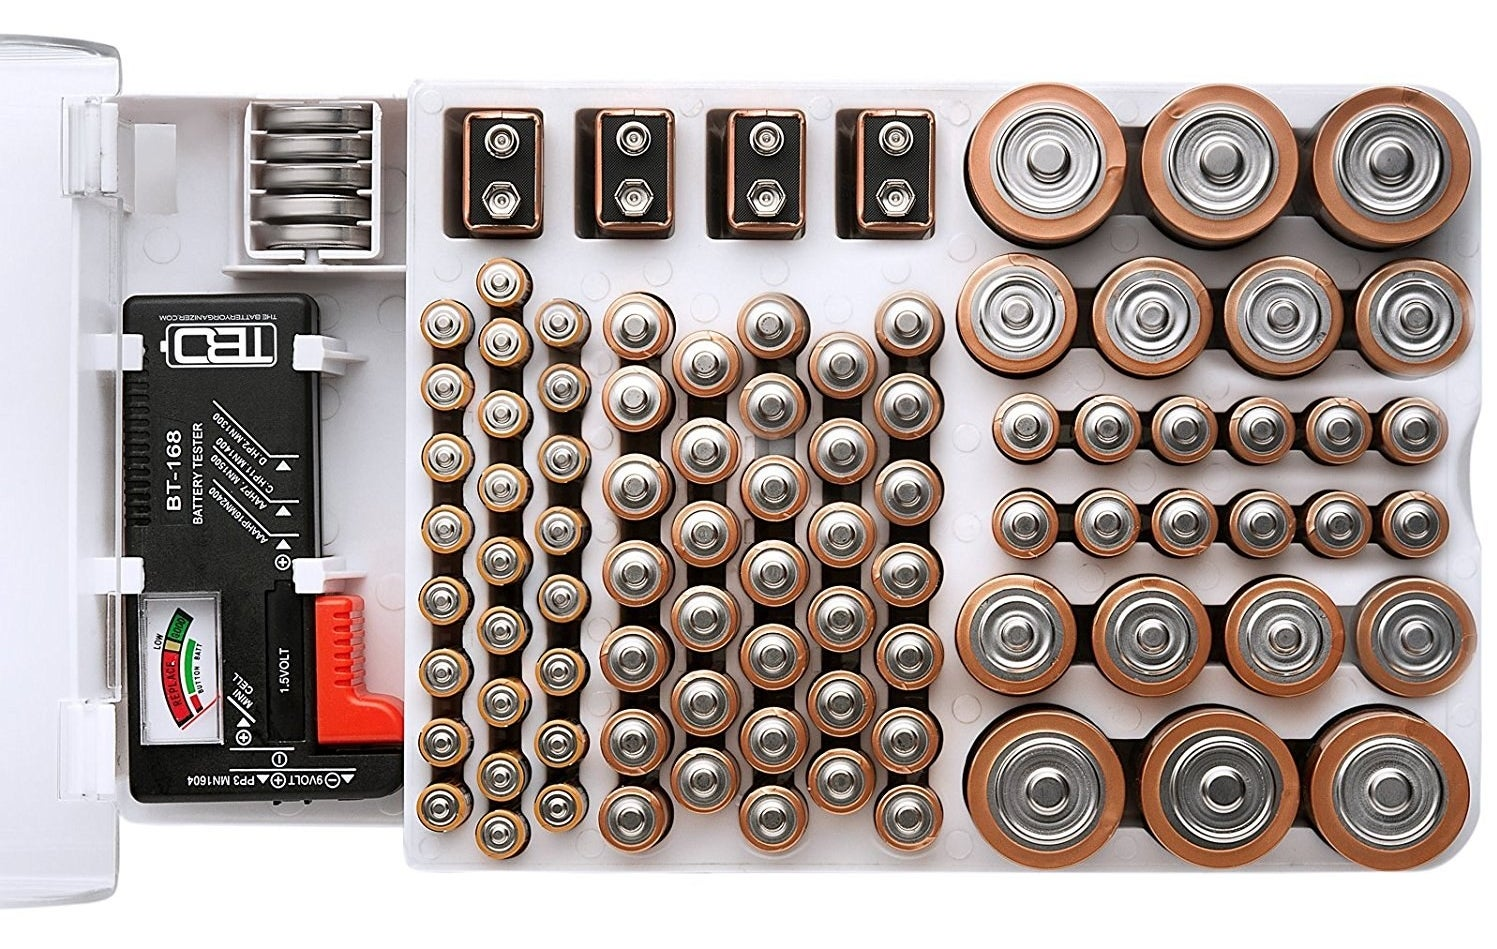 organizer with slots for different sized batteries